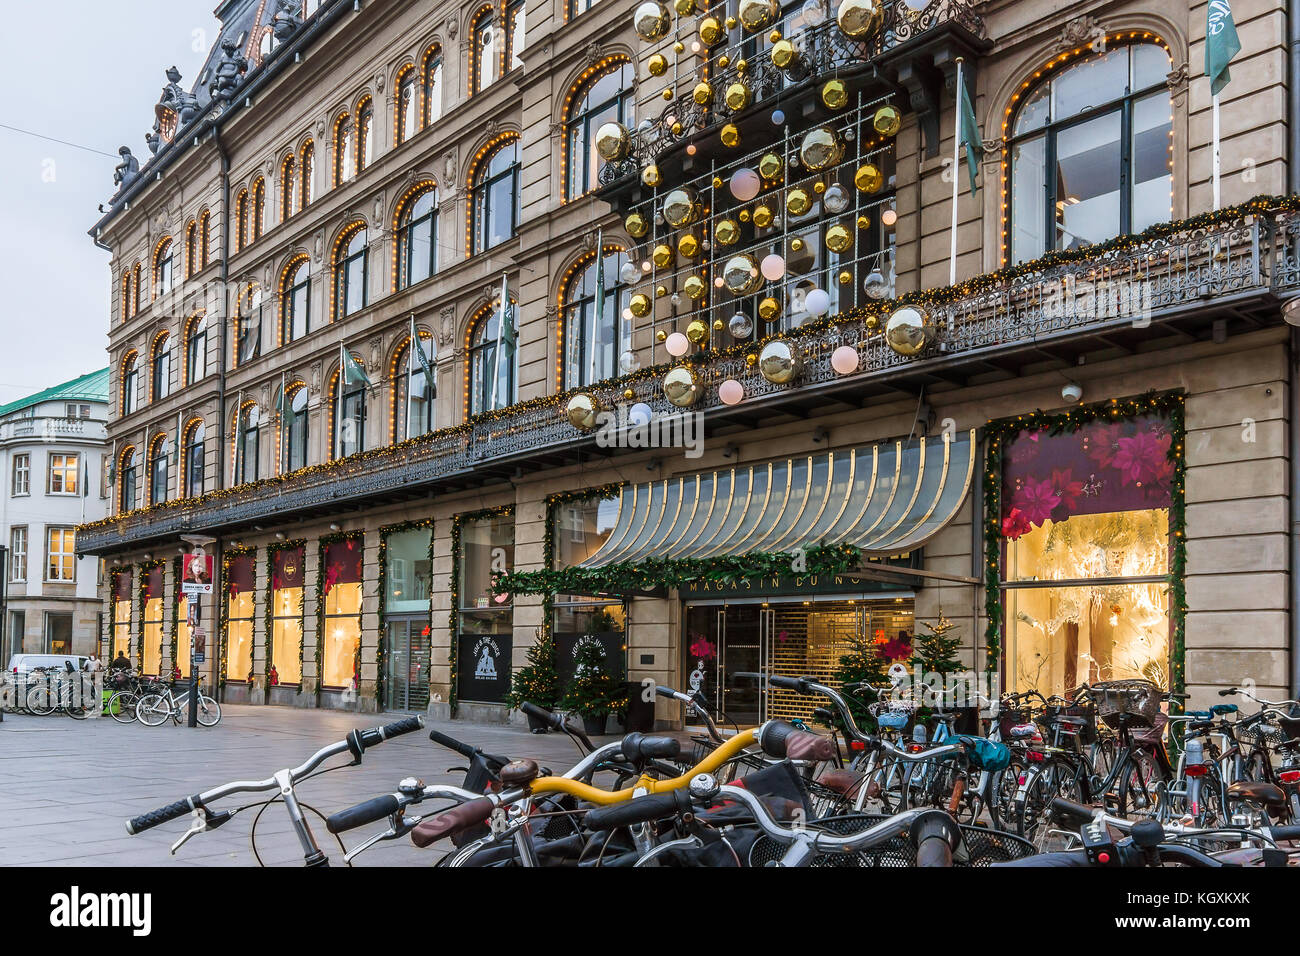 Christmas decorations and bikes at Magasin du Nord in Copenhagen, November 9, 2017 - Stock Image